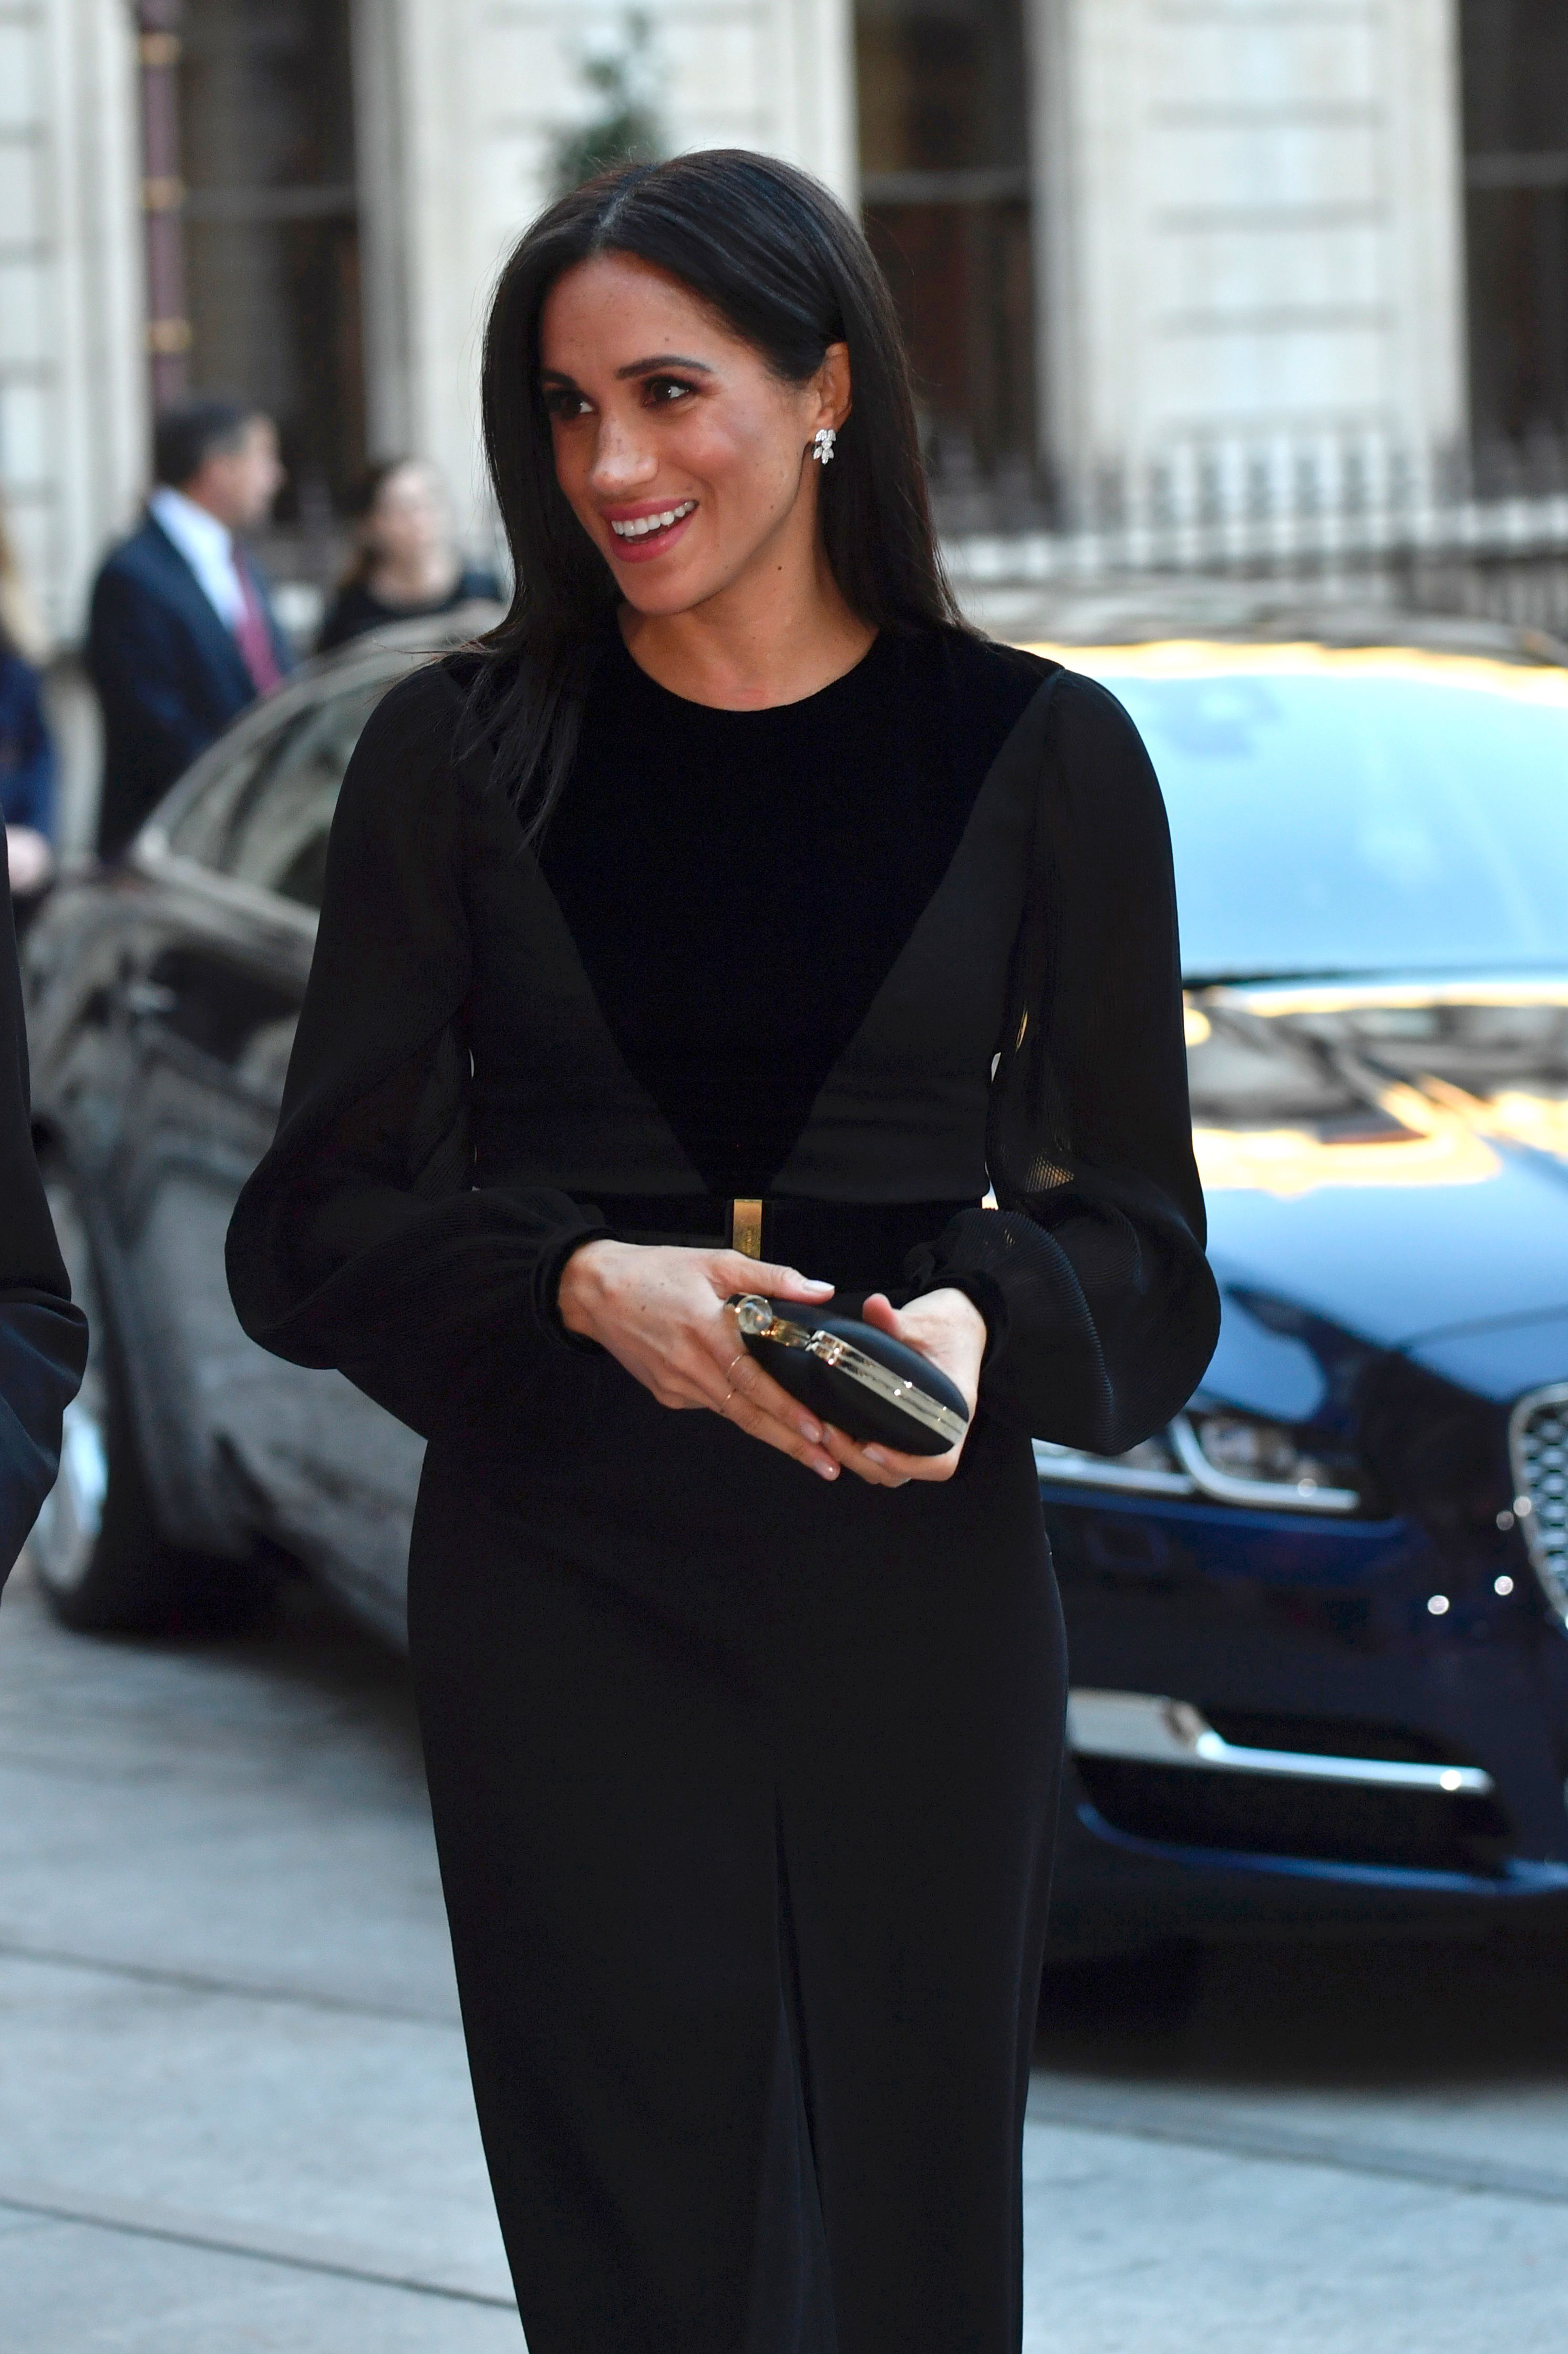 Meghan Markle arrives to open 'Oceania' at Royal Academy of Arts on September 25, 2018 | Photo: Getty Images